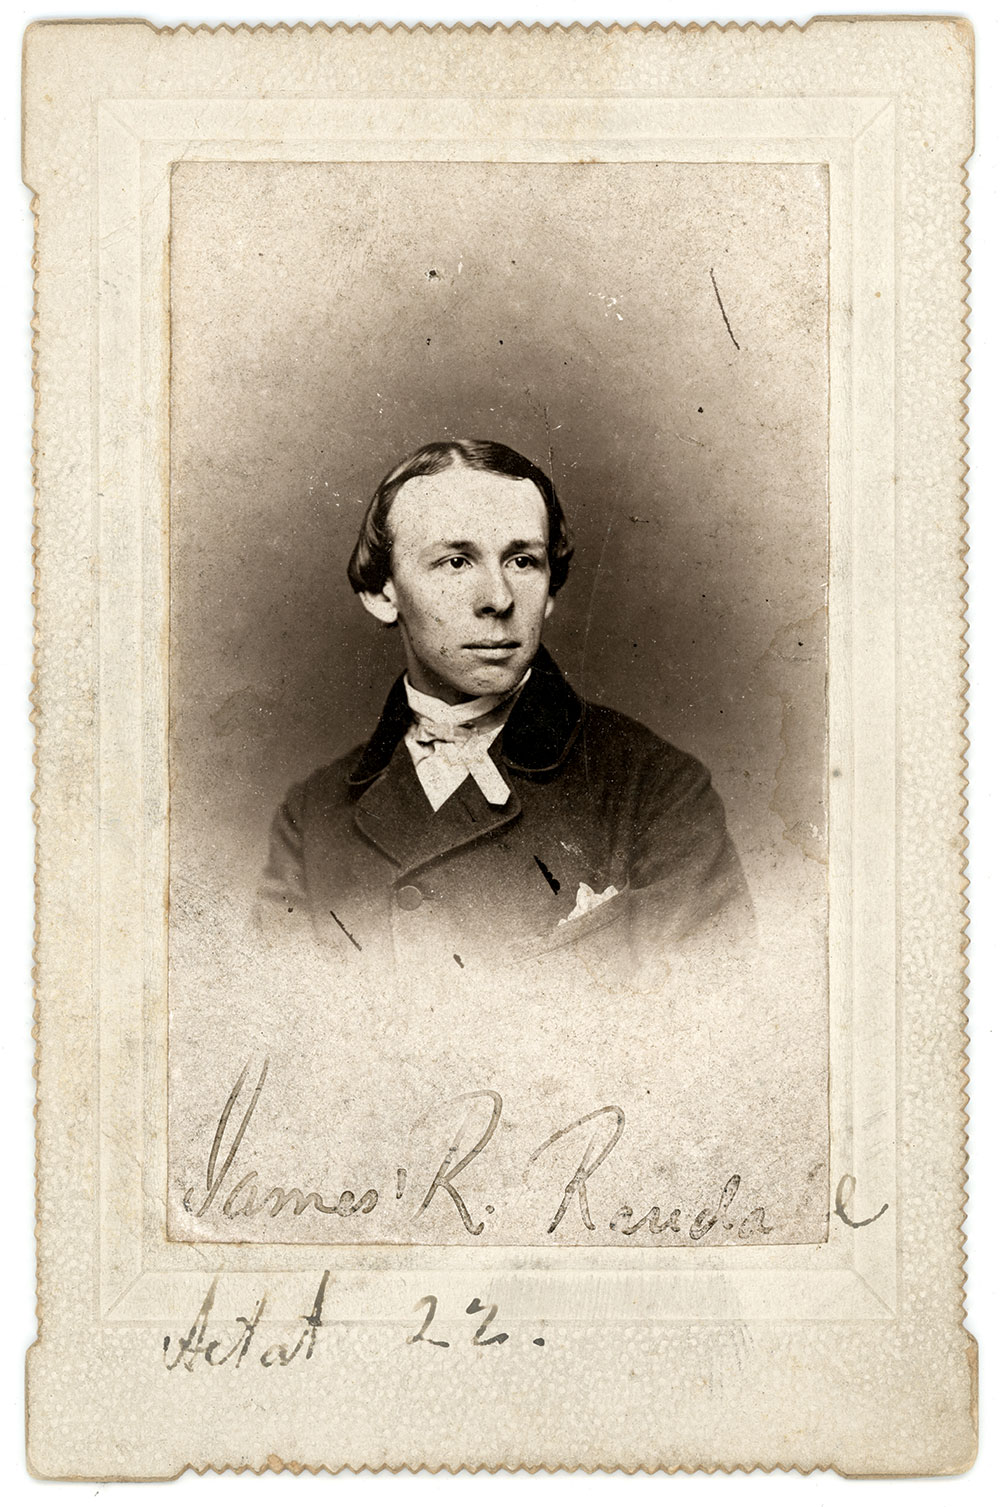 Randall pictured about the time he wrote the poem that became a popular tune in 1861. Albumen print by an unidentified photographer. John O'Brien Collection.